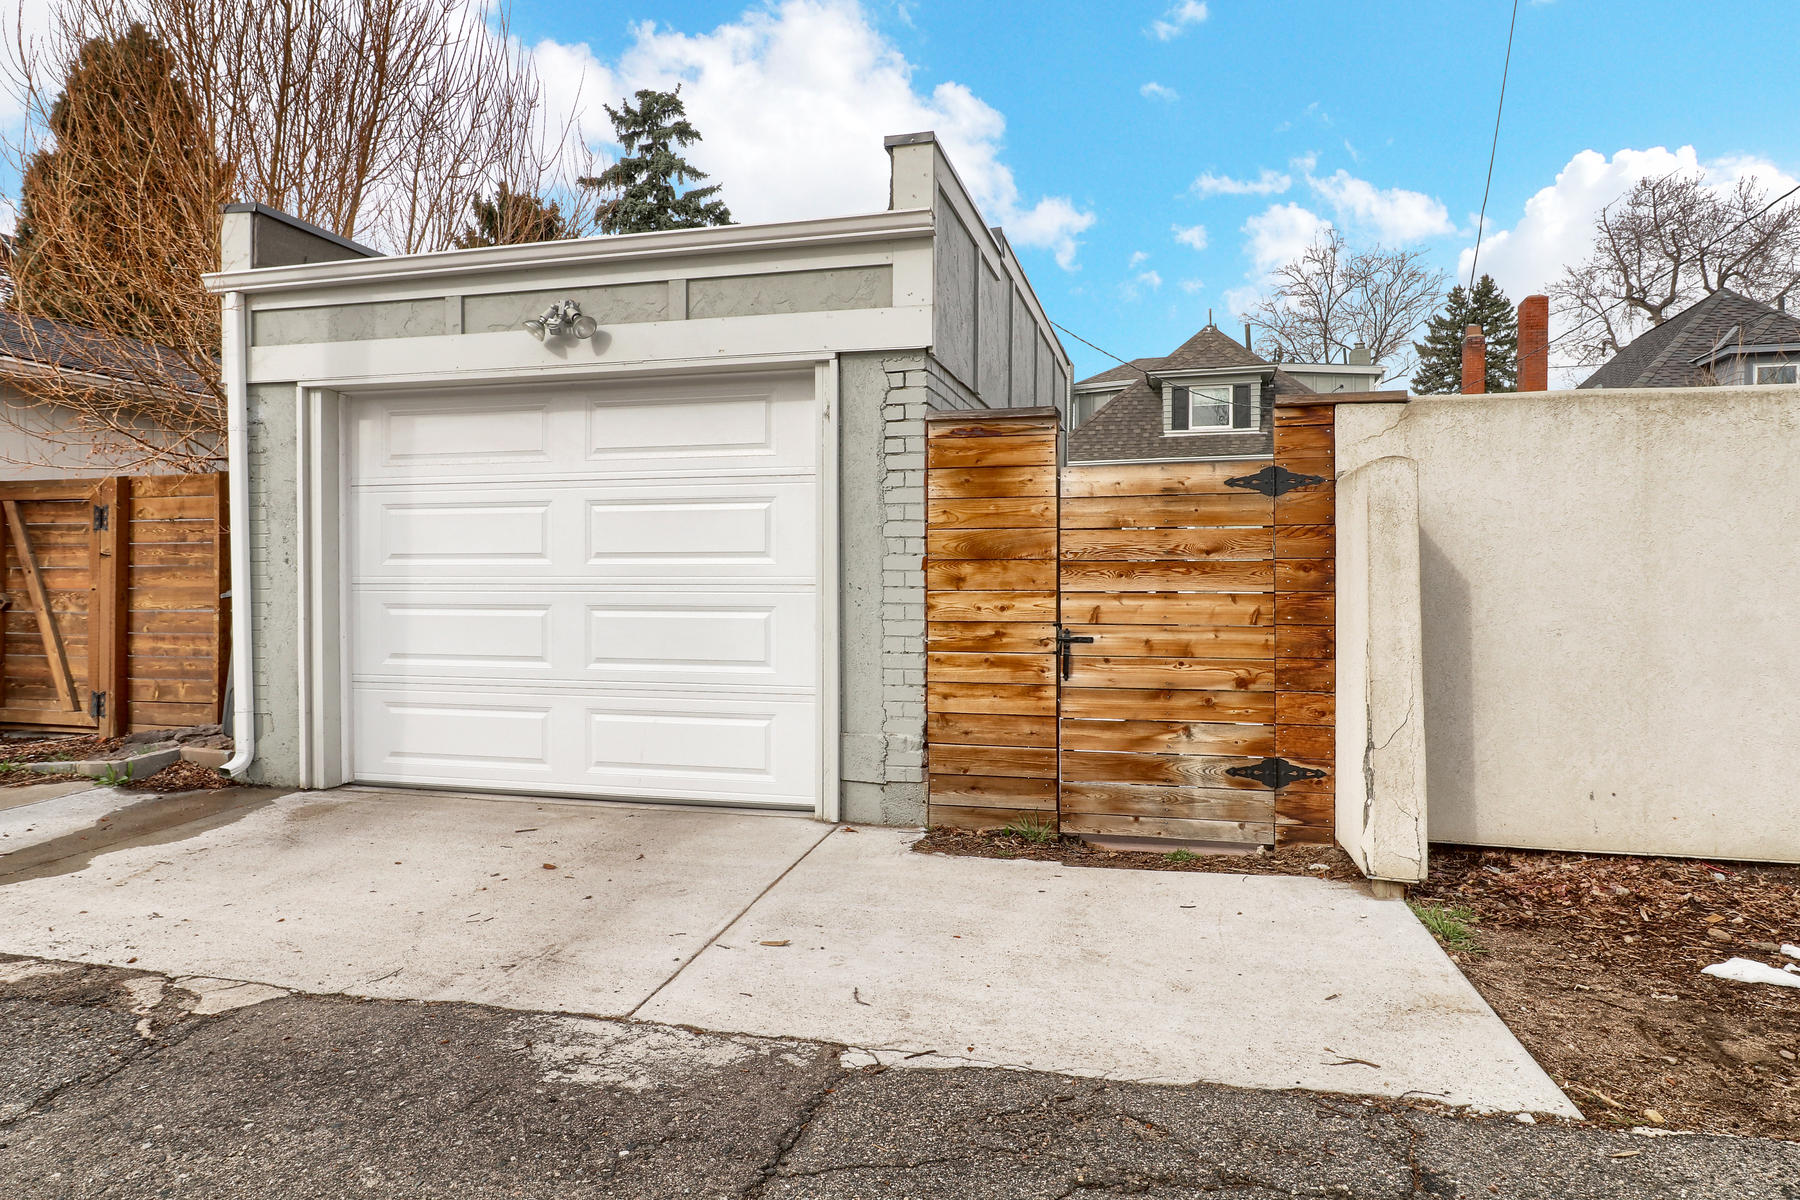 Additional photo for property listing at Charming Bungalow In West Wash Park 664 South Grant Street Denver, Colorado 80209 Estados Unidos